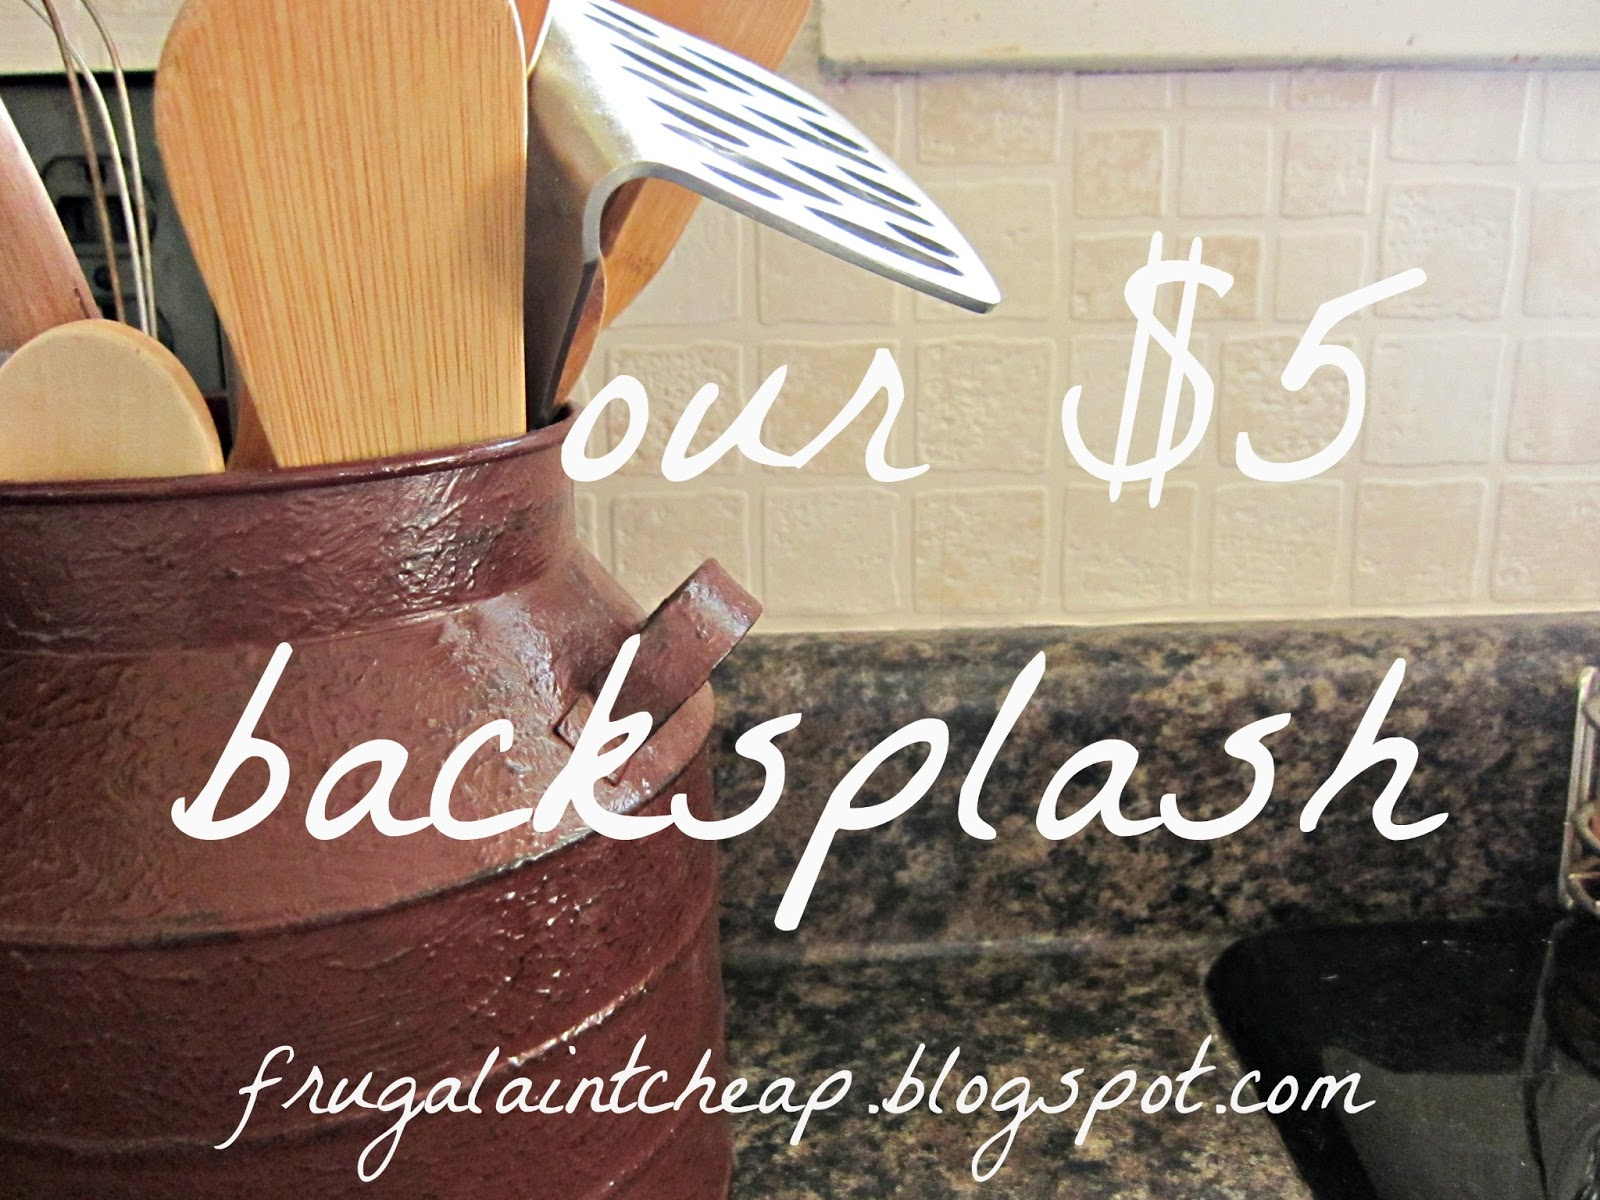 Frugal ain 39 t cheap kitchen backsplash great for renters too Inexpensive kitchen backsplash